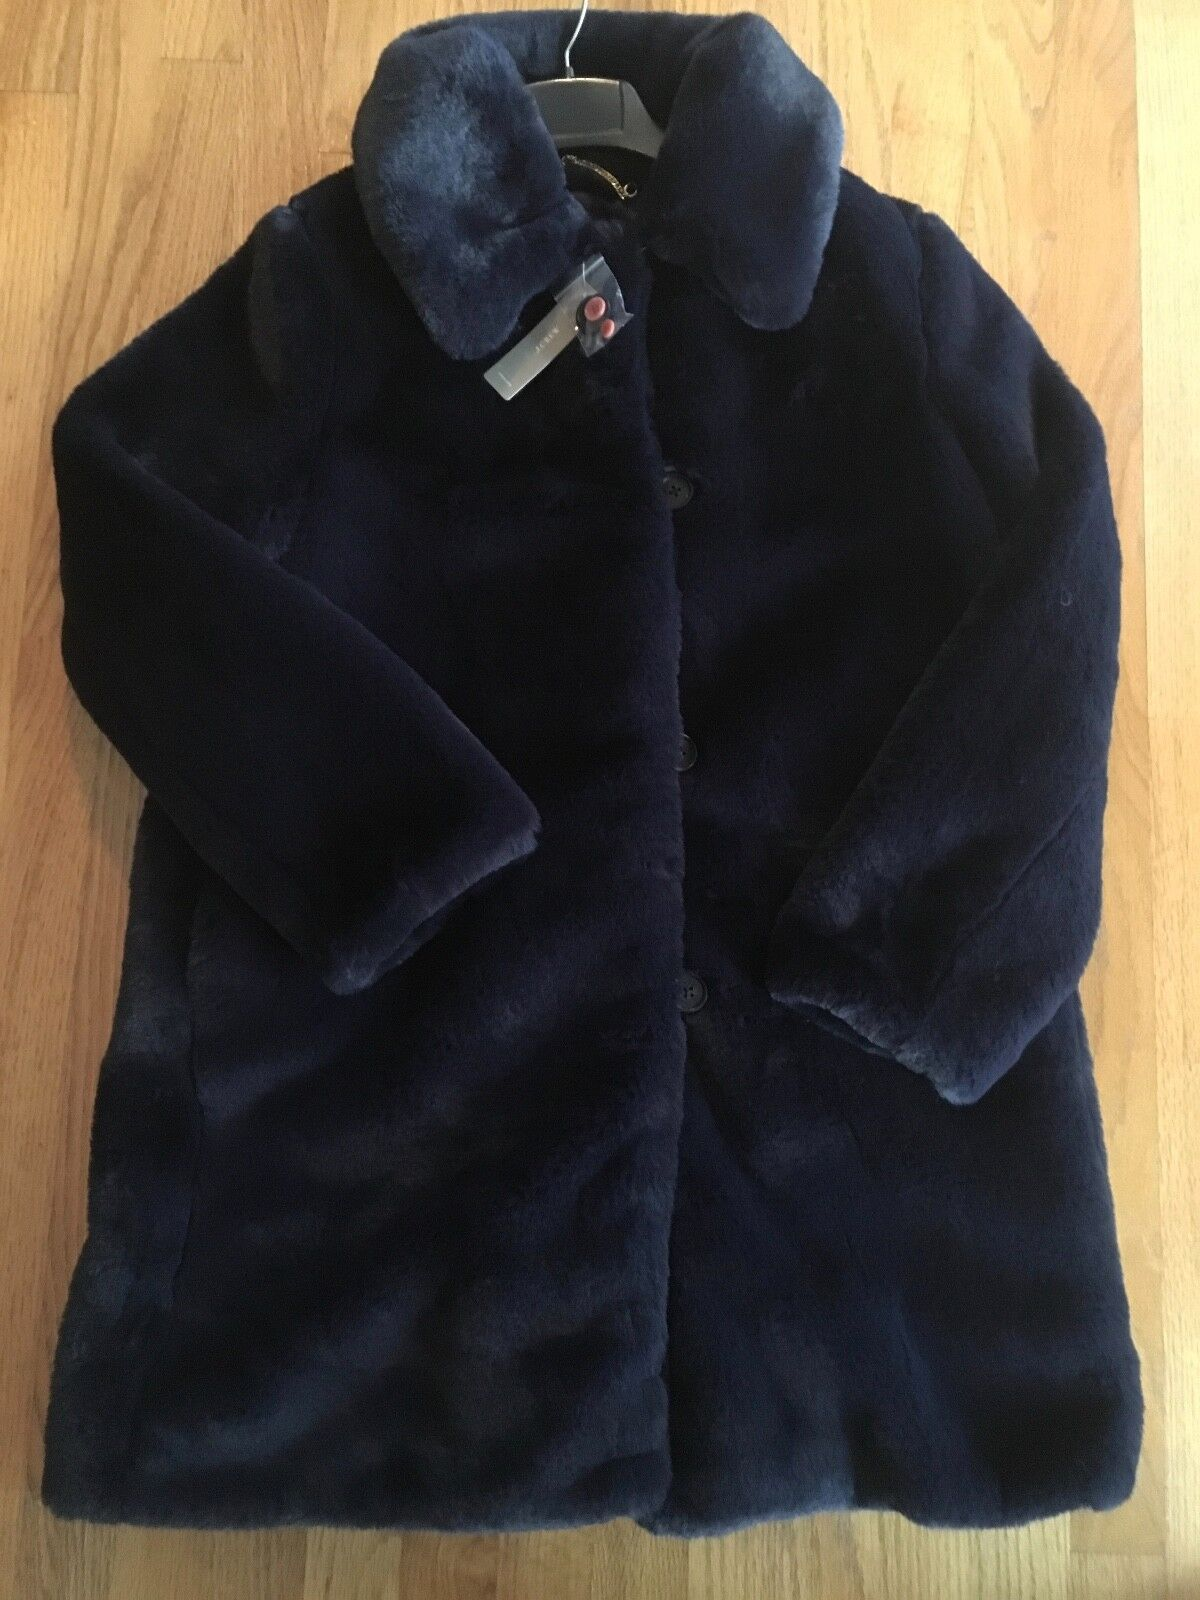 J Crew NWT Faux-Fur Coat Navy  Size S  M    K3099   Retail  Holiday 2018